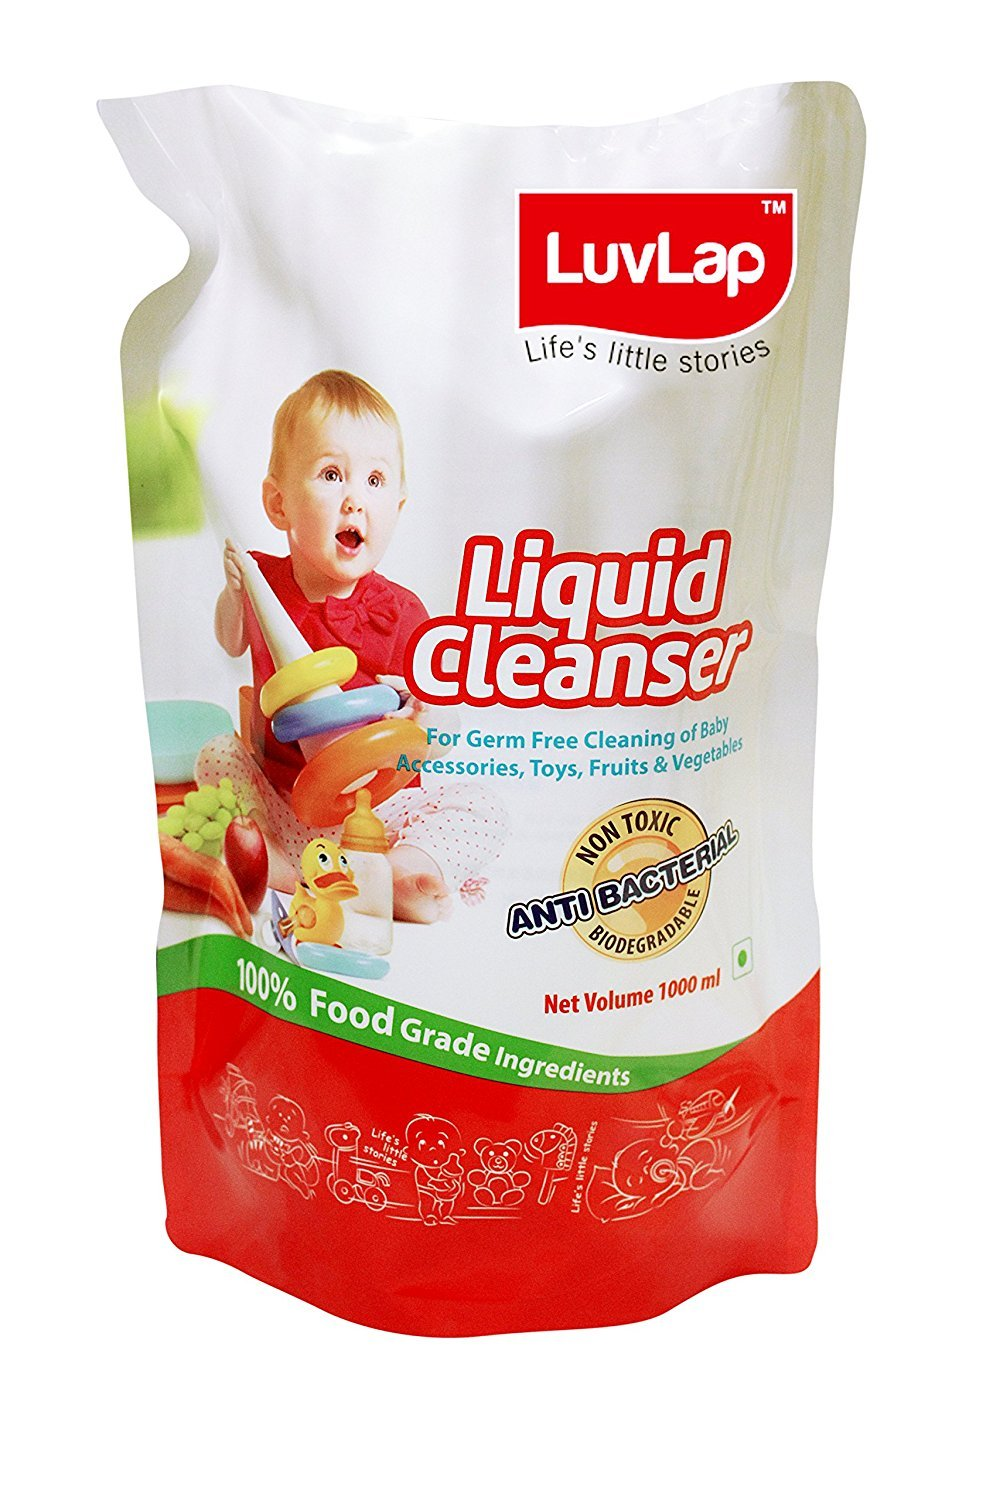 Luvlap Anti-Bacterial Baby Bottles, Accessories And